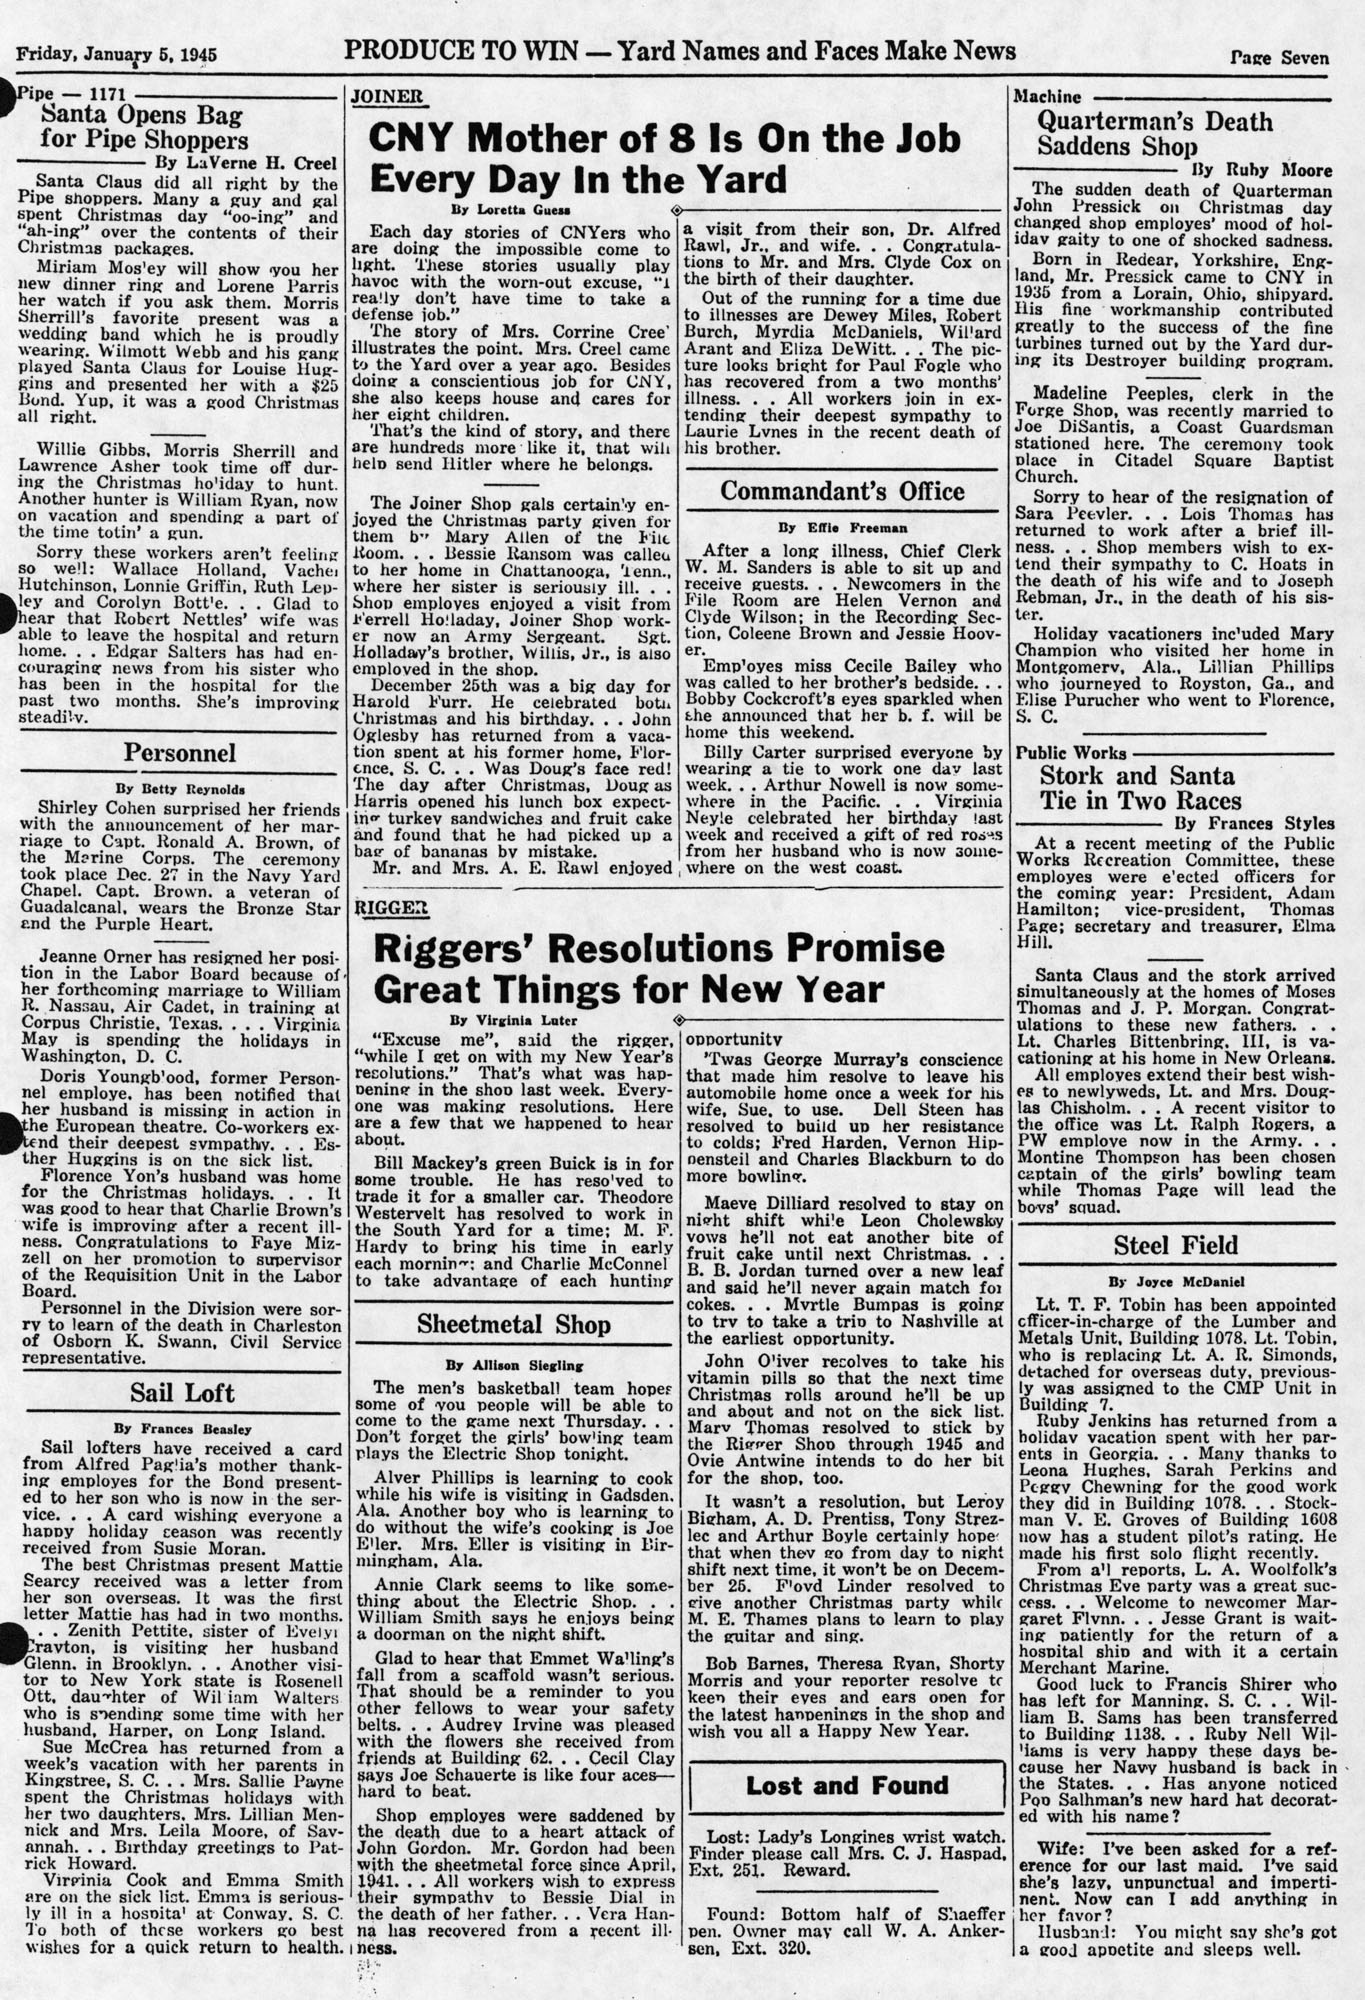 Produce to Win!, Volume 3, Edition 23, page vii